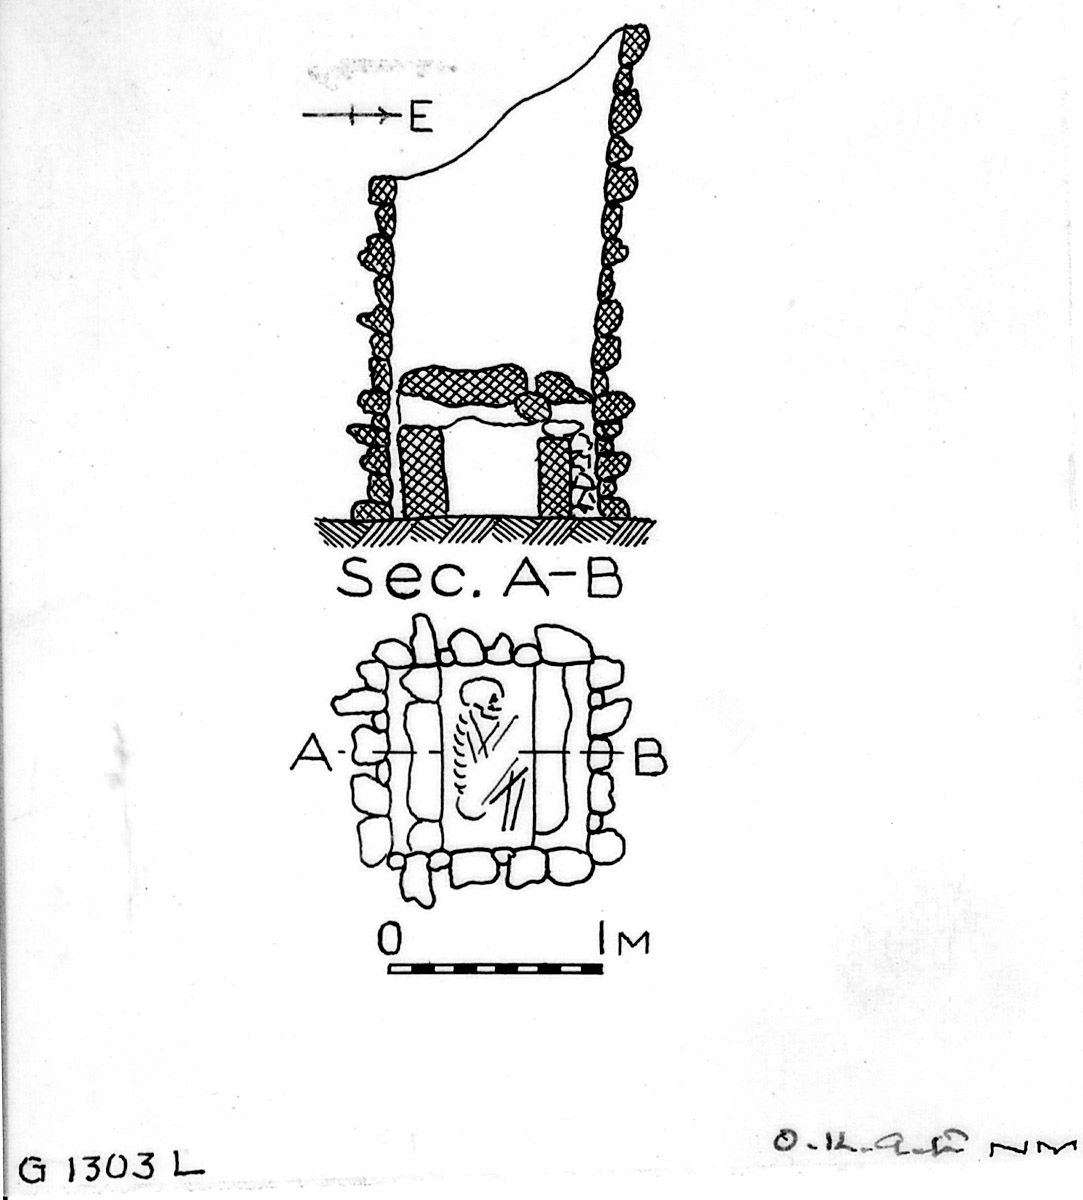 Maps and plans: G 1303, Shaft L